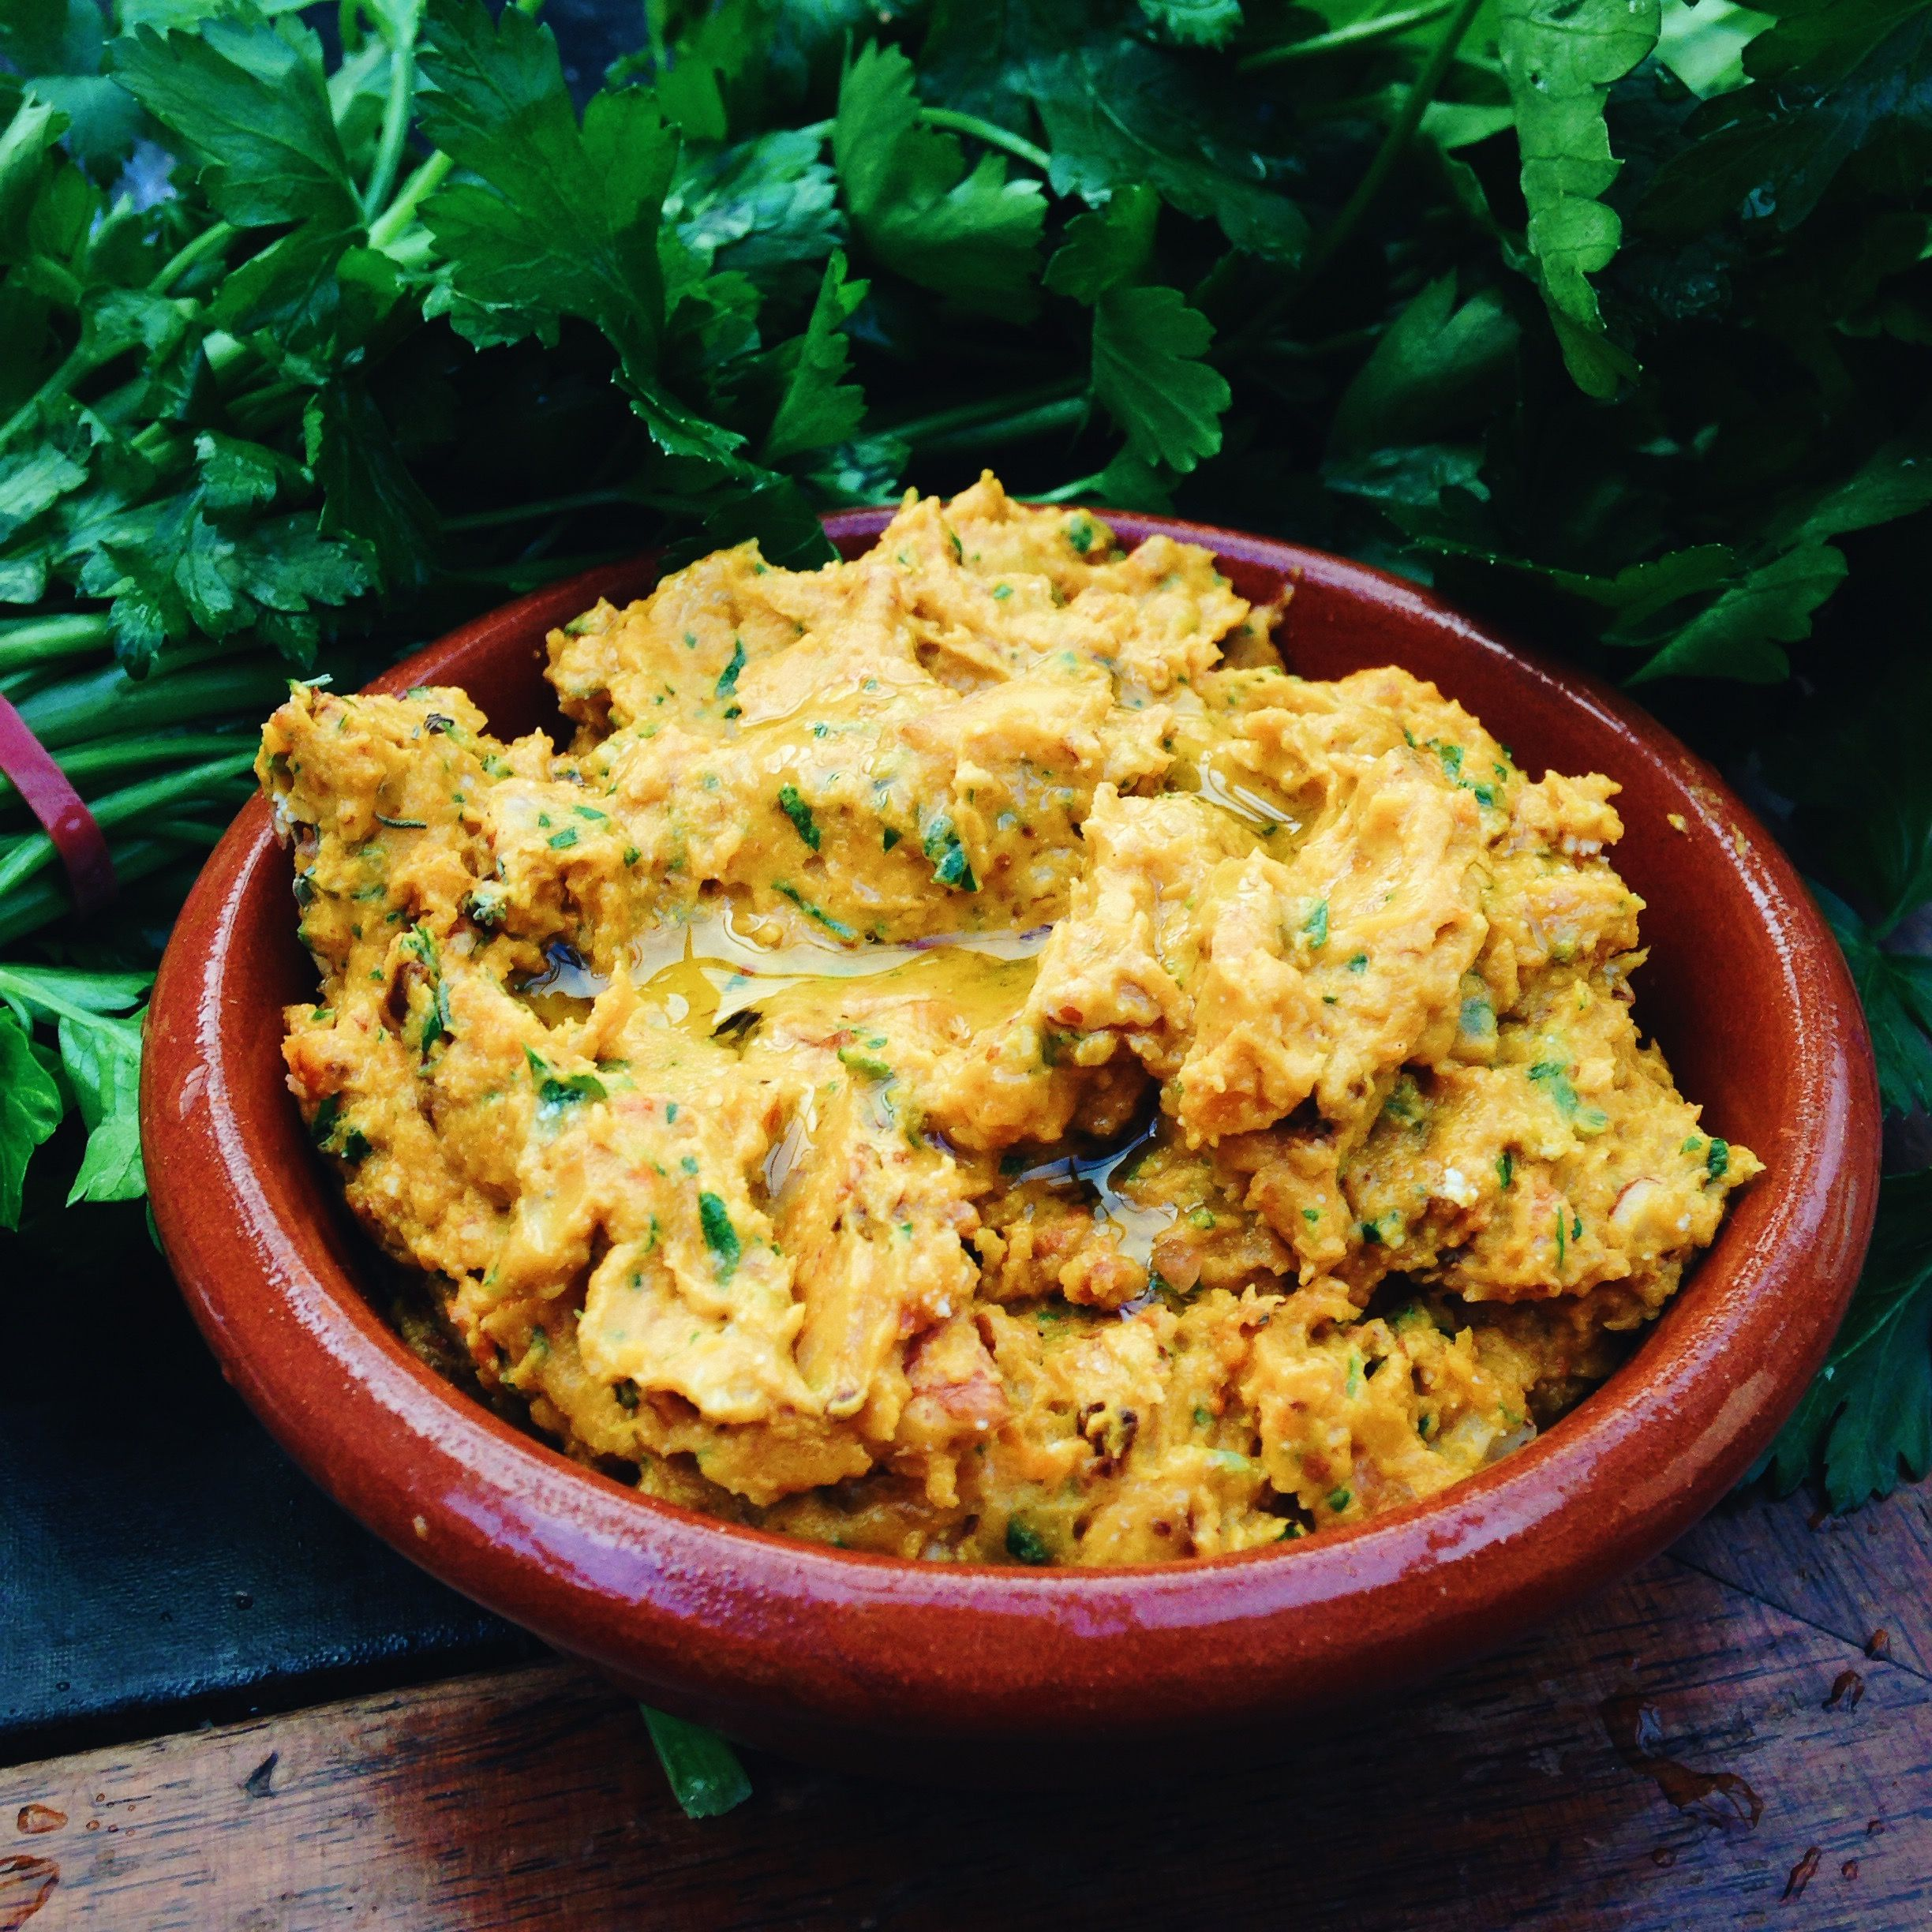 DIPS THAT WILL CHANGE YOUR SNACKING FOR THE BETTER  http://thehealthyhunterblog.com/2015/08/12/dips-that-will-change-your-snacking-for-the-better/#more-737